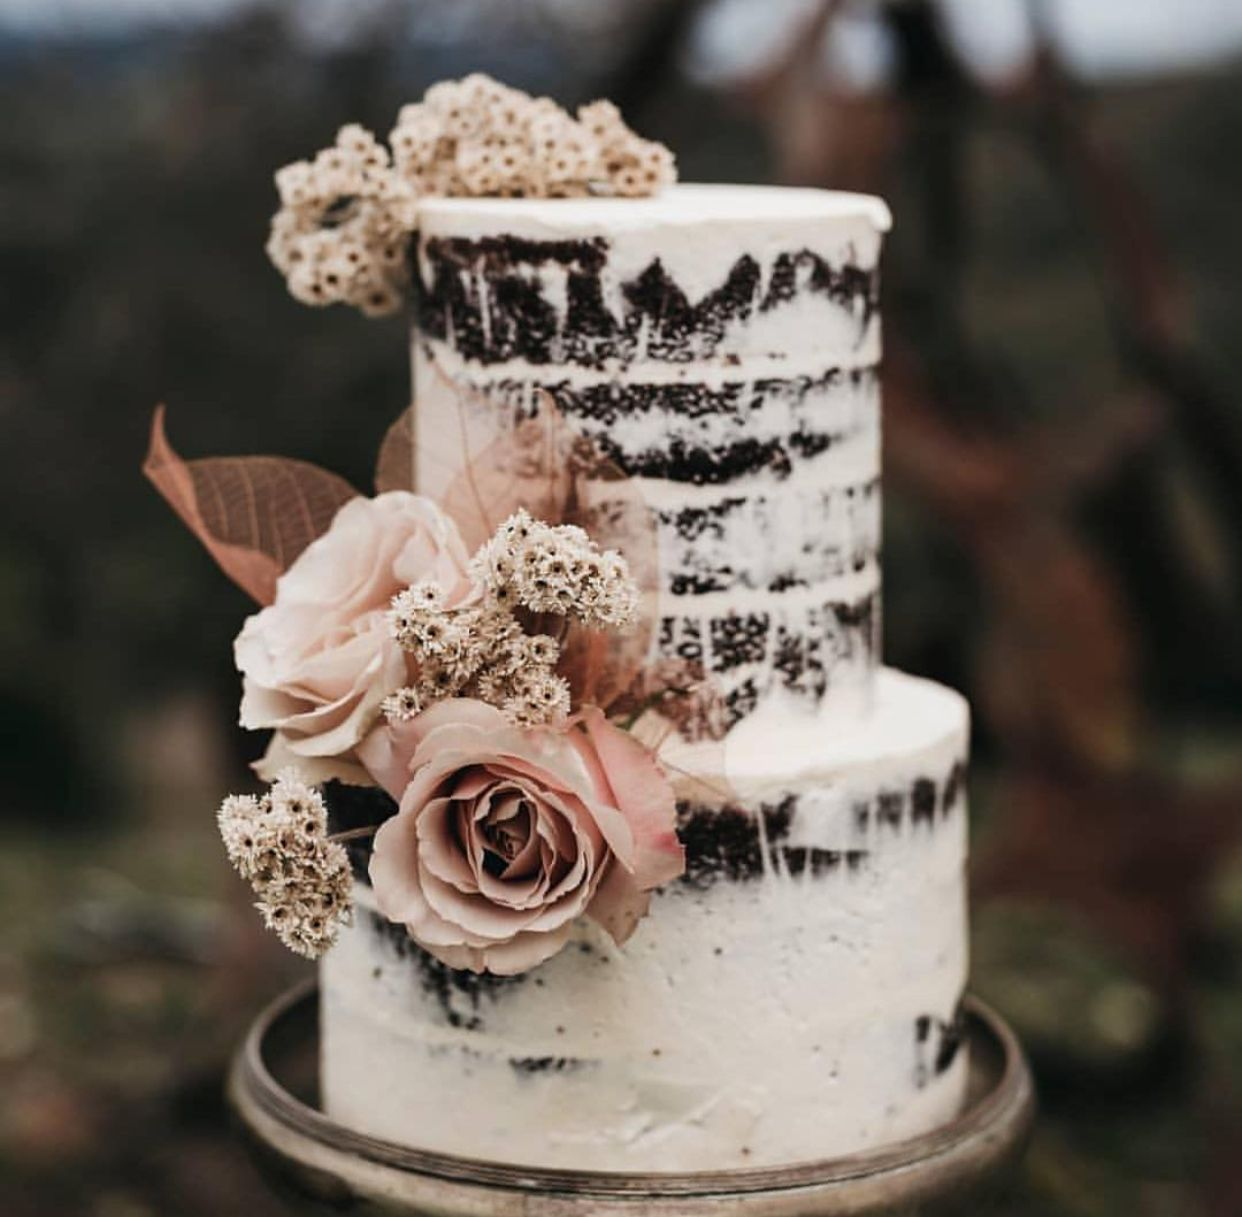 Neat Piped Edge Naked Wedding Cake & Cupcakes - Cake by